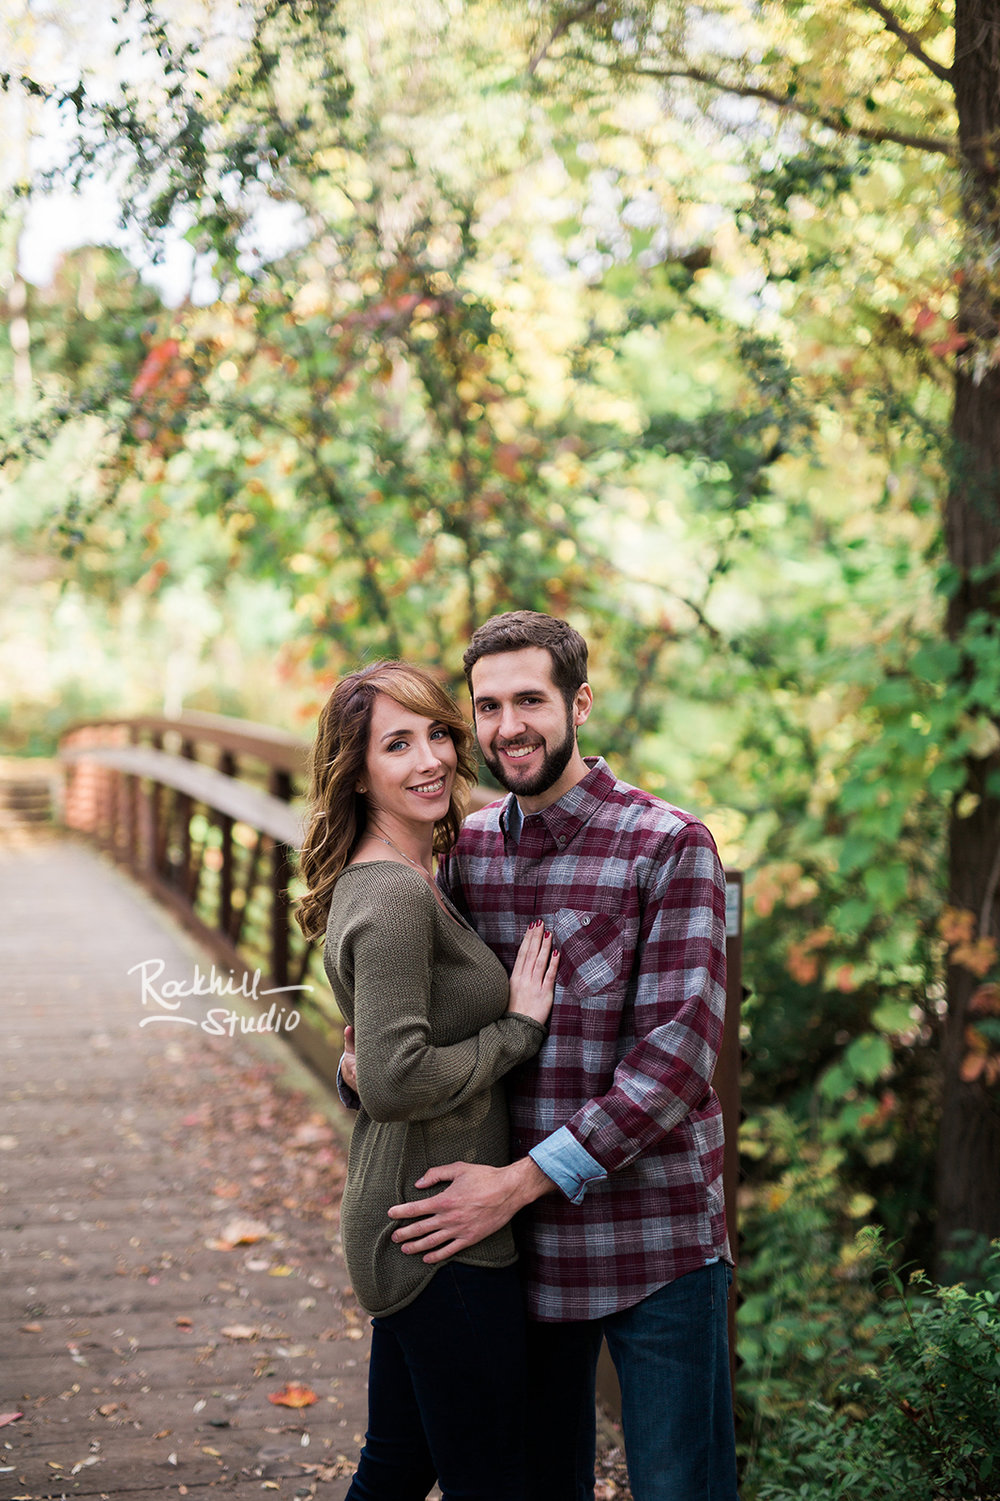 northern-michigan-wedding-petoskey-rockhill-studio-photography-sm-8.jpg